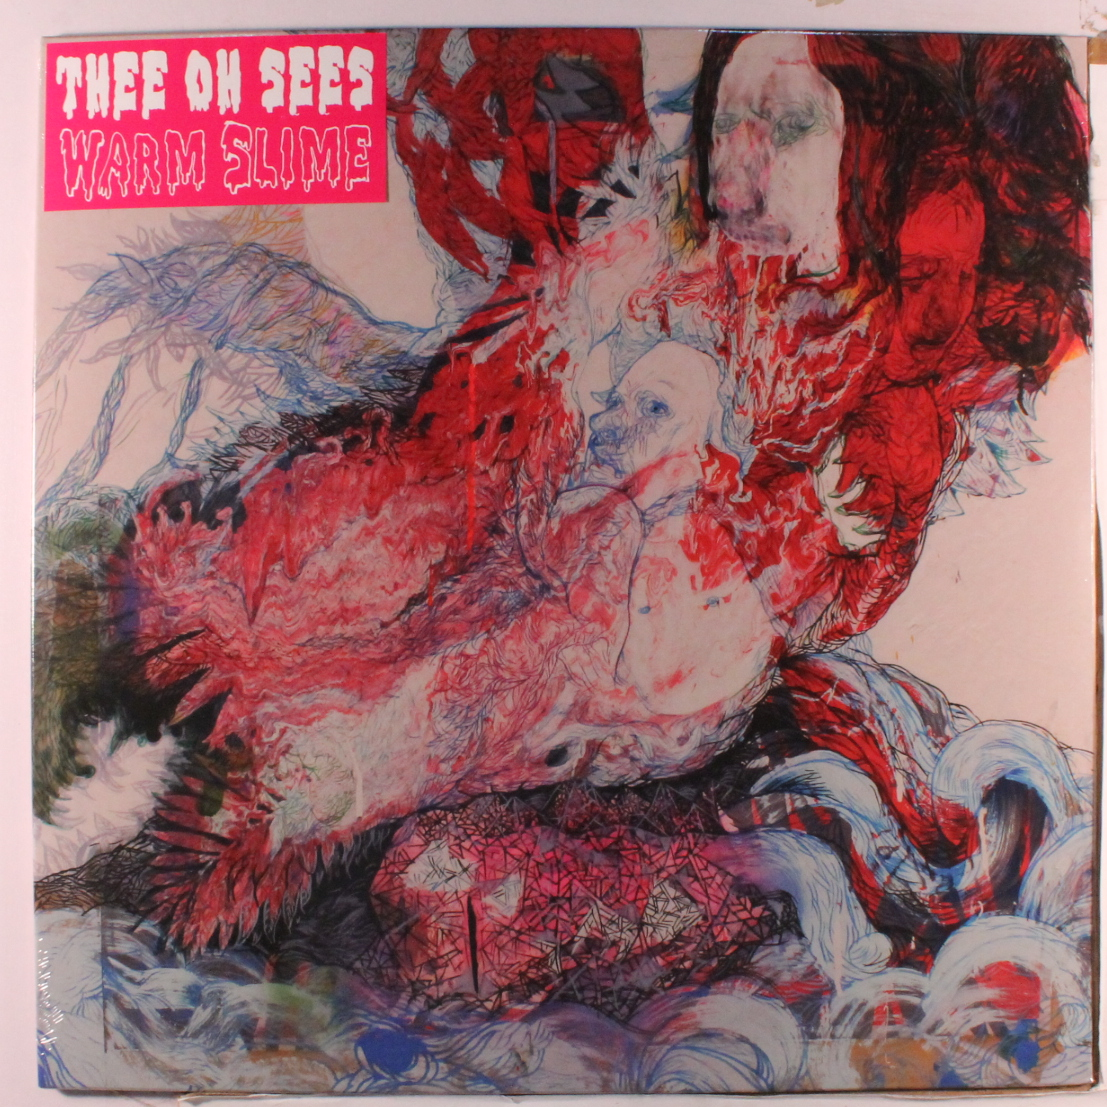 Thee Oh Sees - Warm Slime LP